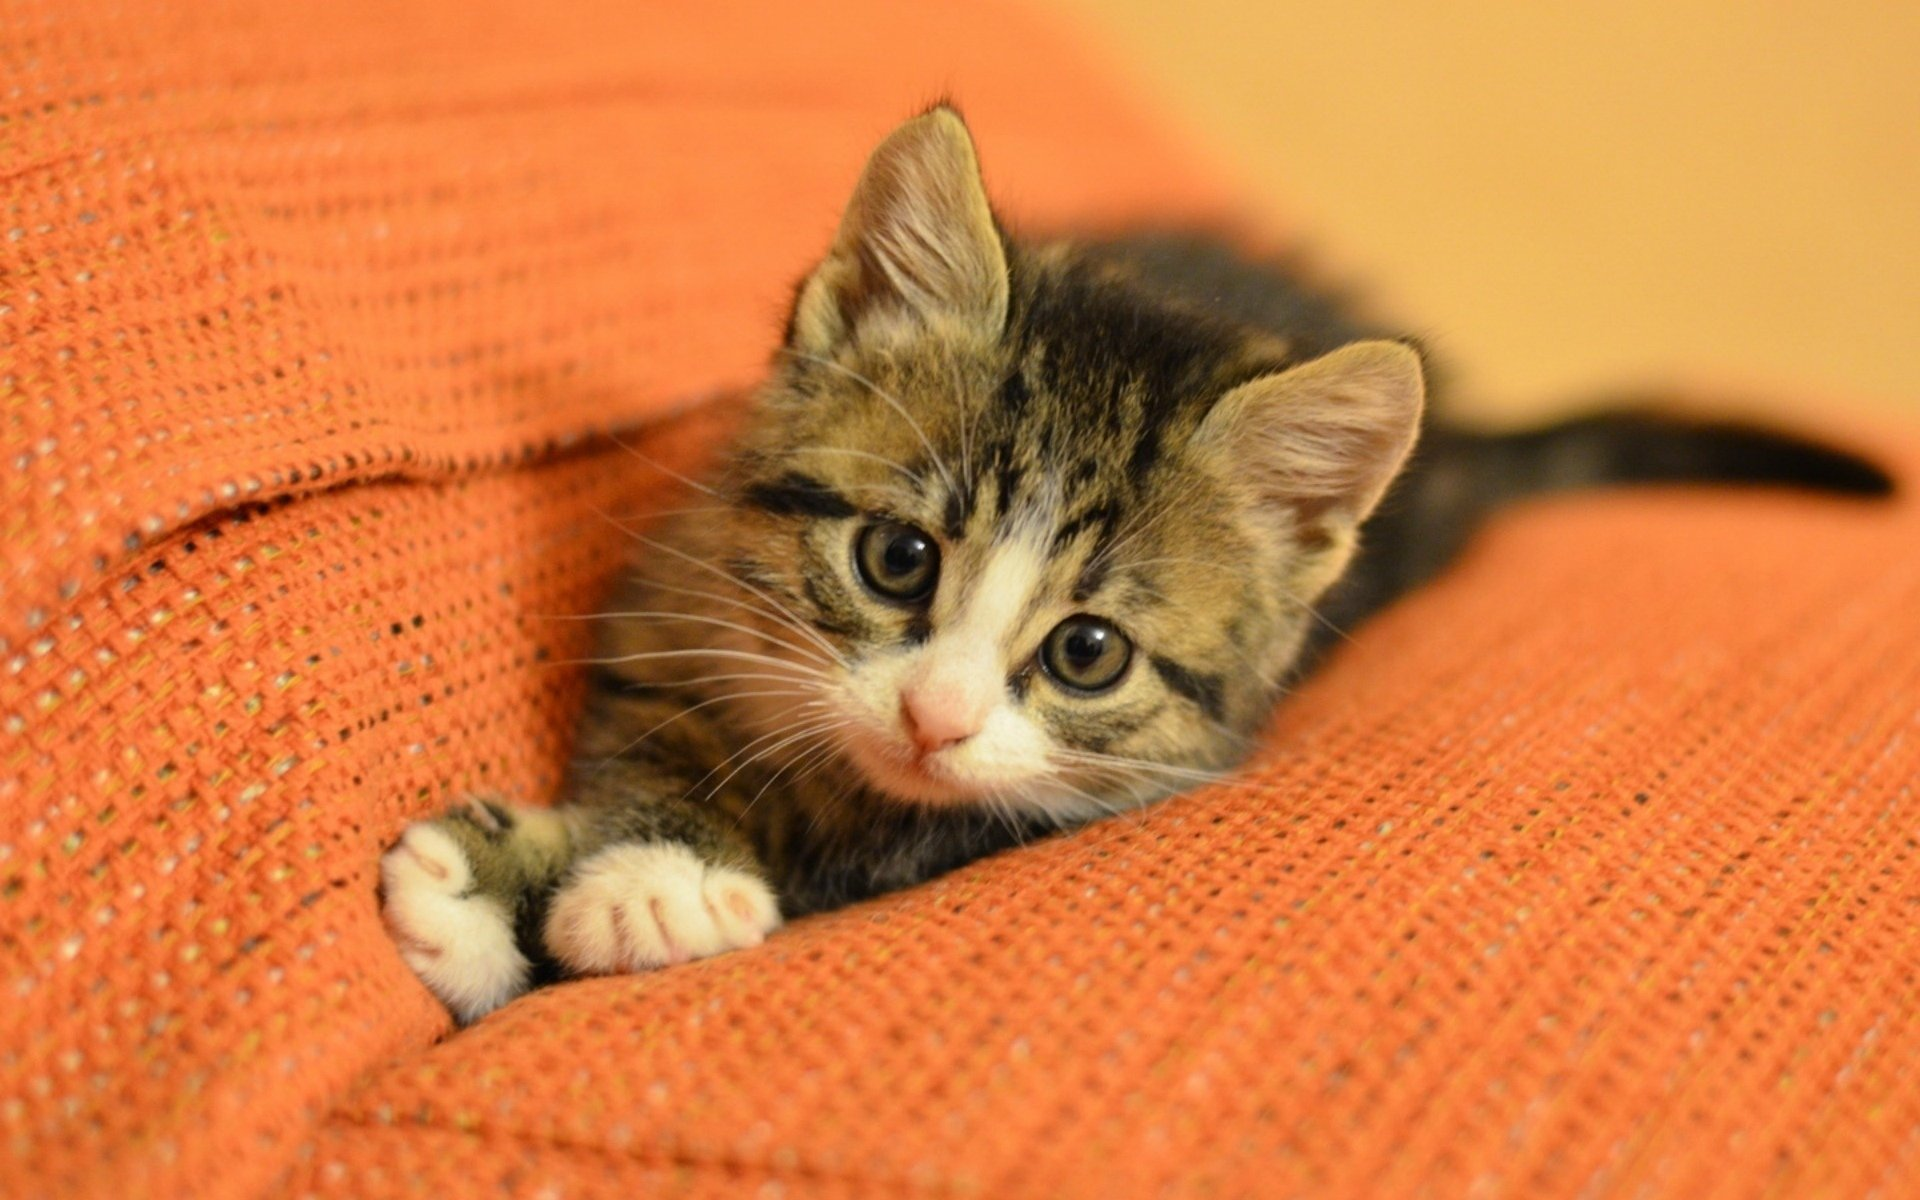 cats cat kitten muzzle . paws feet sofa . orange background widescreen wallpapers